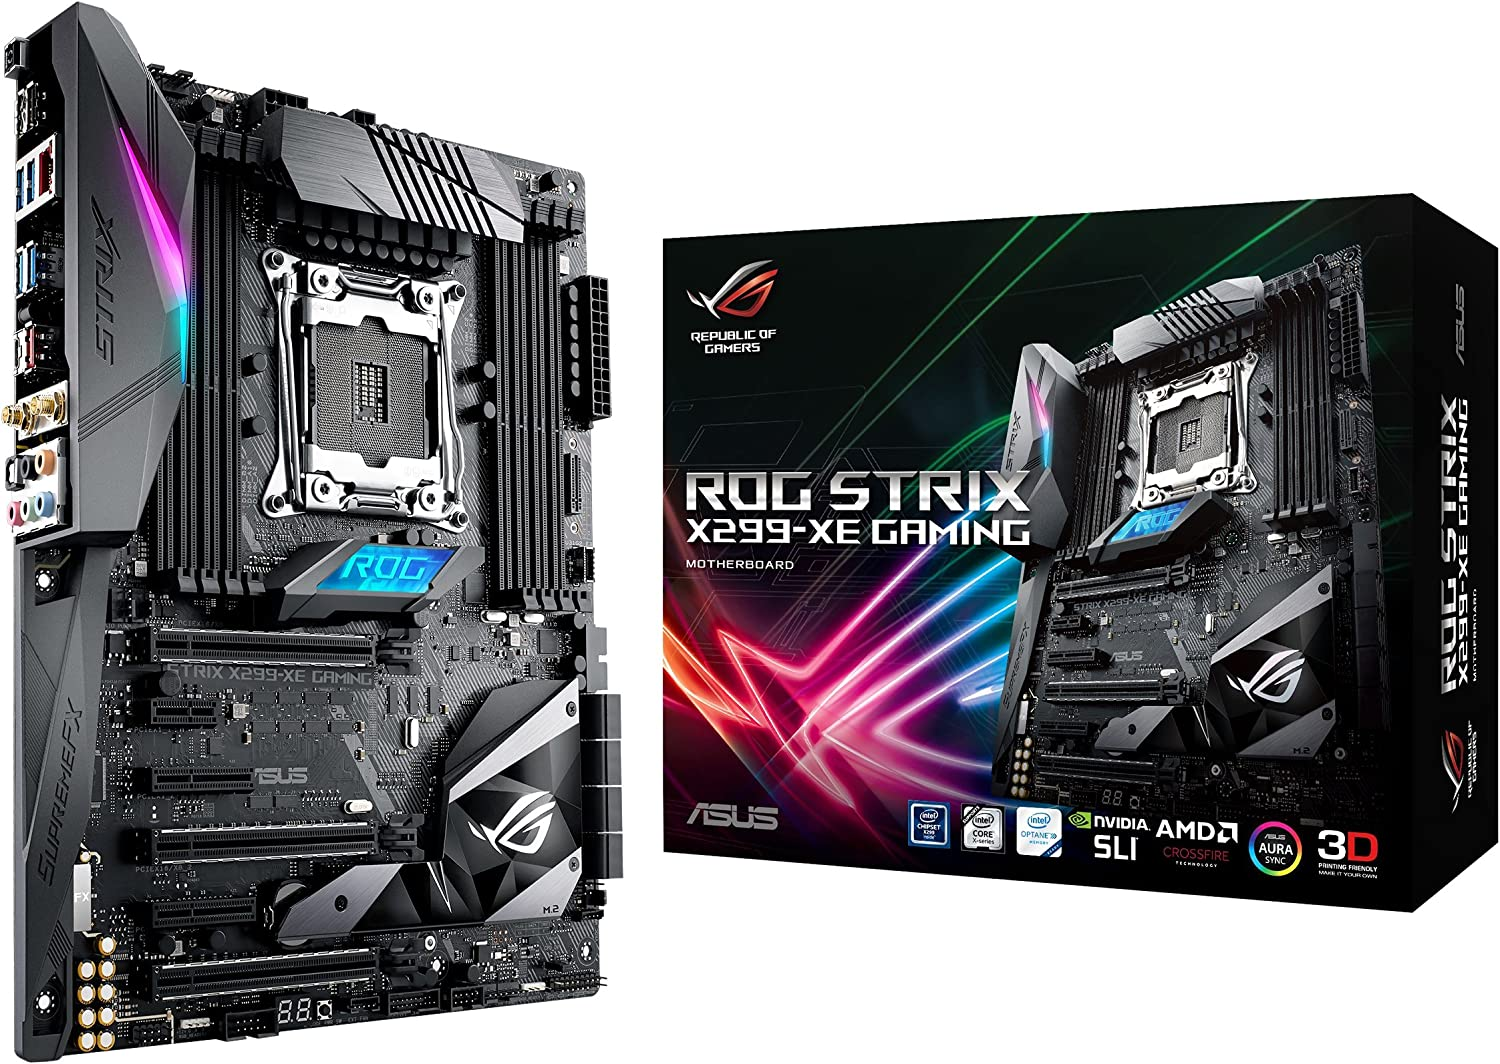 ASUS LGA2066 DDR4 M.2 USB 3.1 802.11AC Wi-Fi ATX with Aura for Intel Core X-Series Processors Motherboards (ROG Strix X299-XE Gaming)